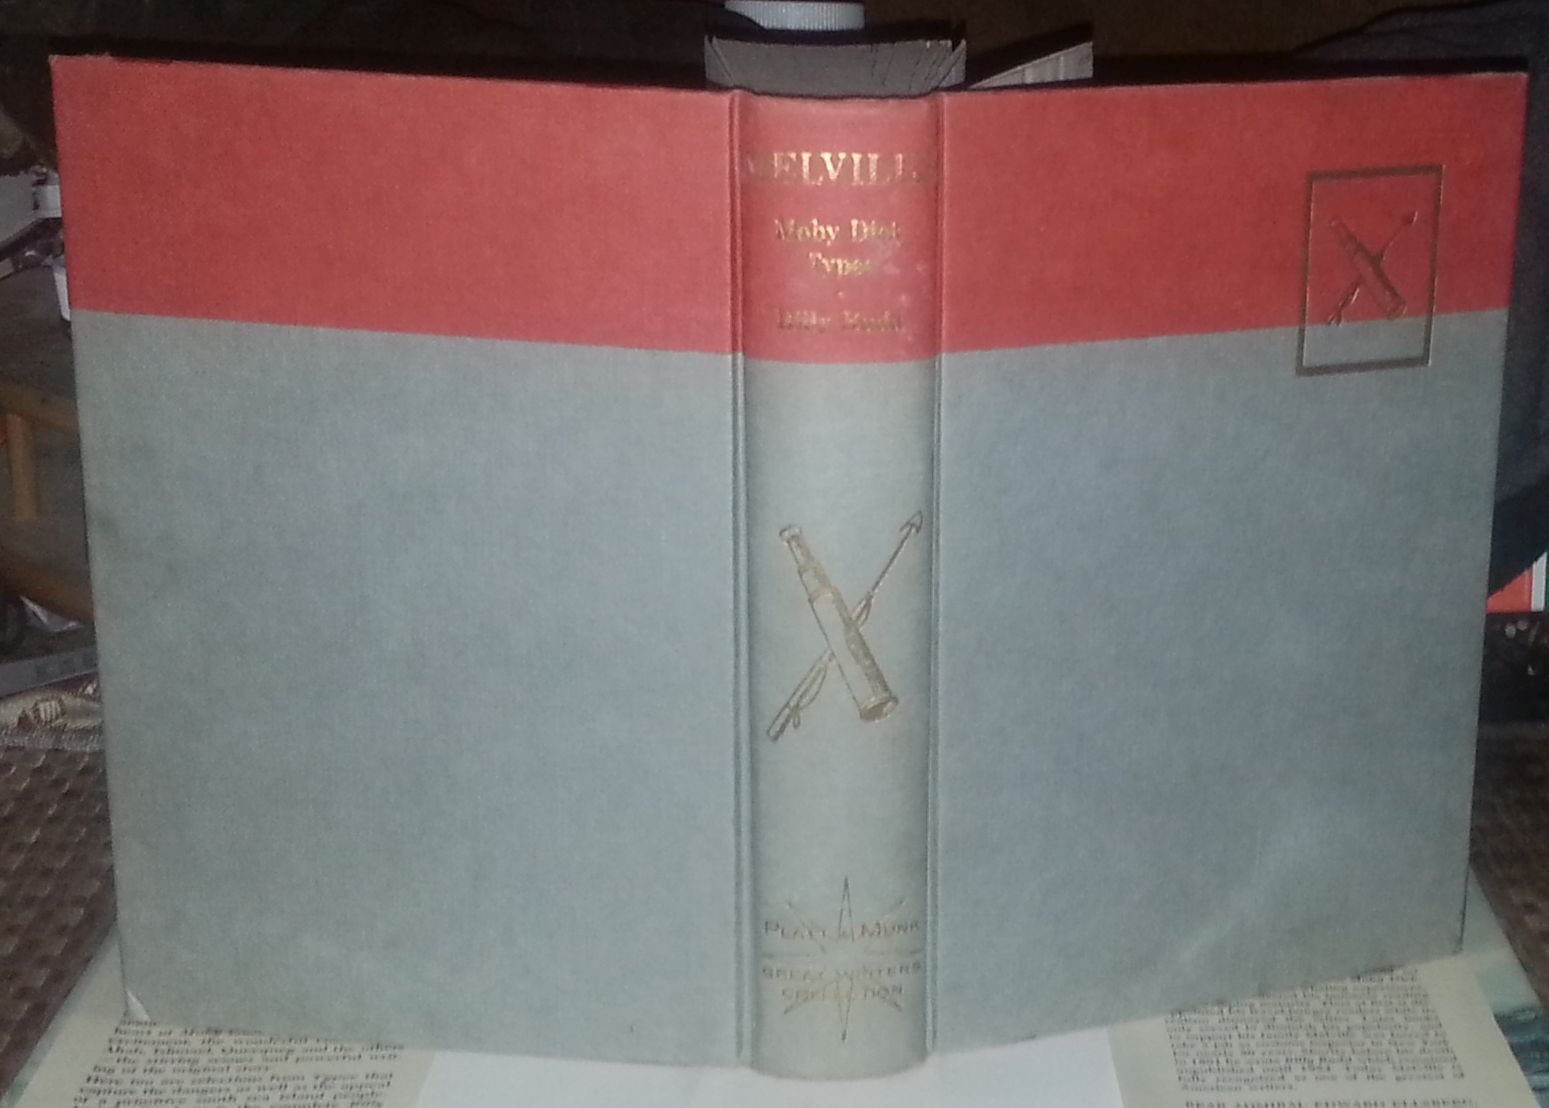 The Best of Moby Dick and Typee also Billy Budd by Herman Melville 1964 HBDJ